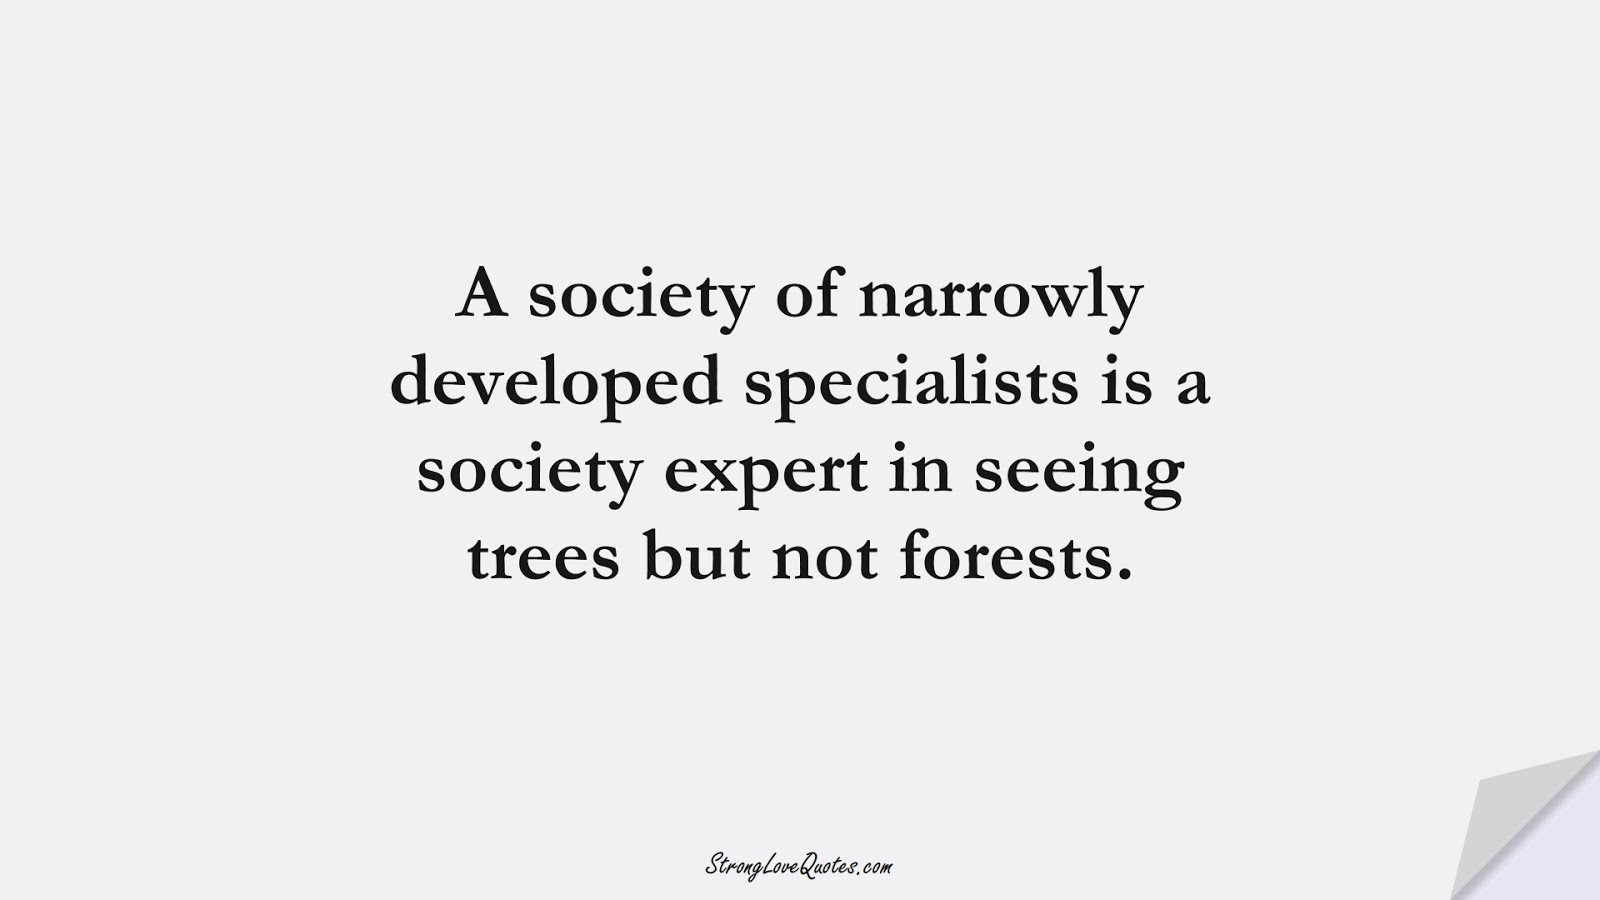 A society of narrowly developed specialists is a society expert in seeing trees but not forests.FALSE